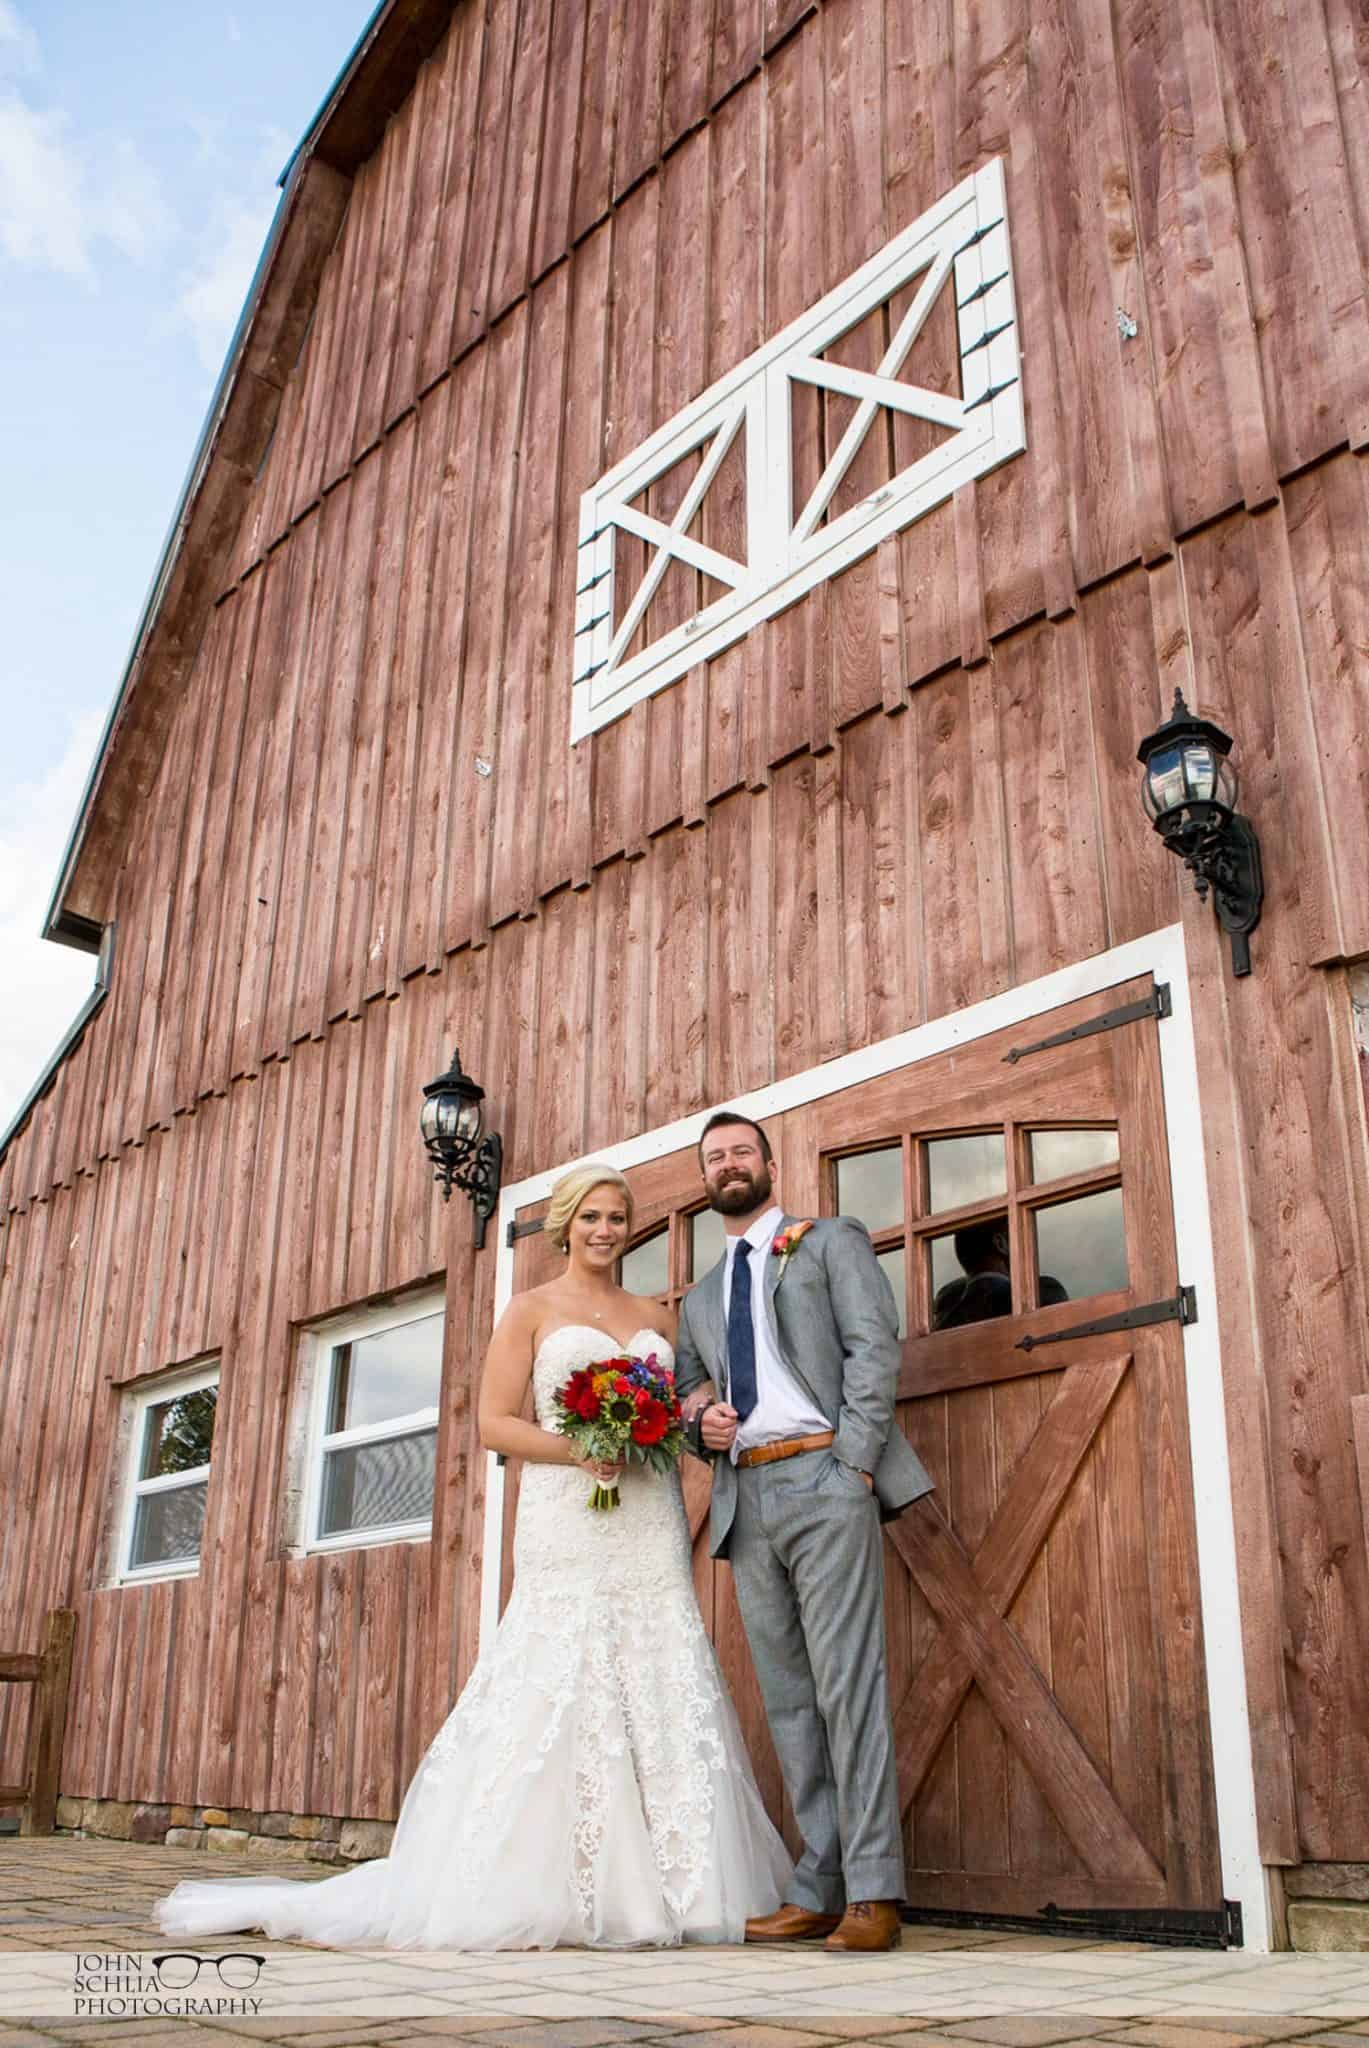 021-twin-silos-wedding